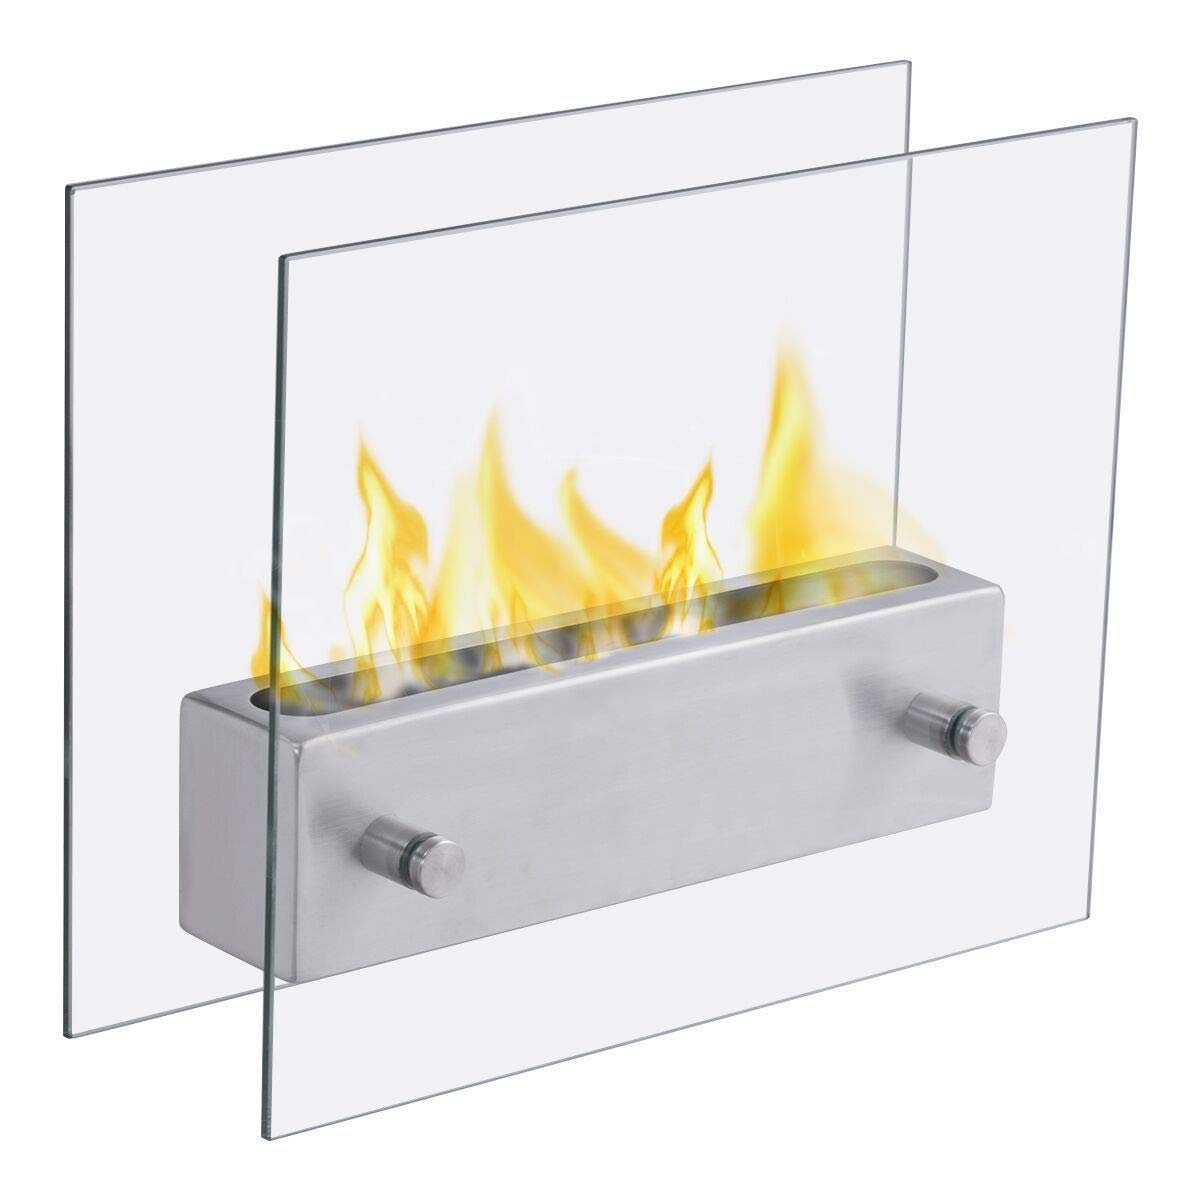 FDInspiration Sliver 14'' Portable Tabletop Bio Ethanol Fireplace w/Metal Fire Cover with Ebook by FDInspiration